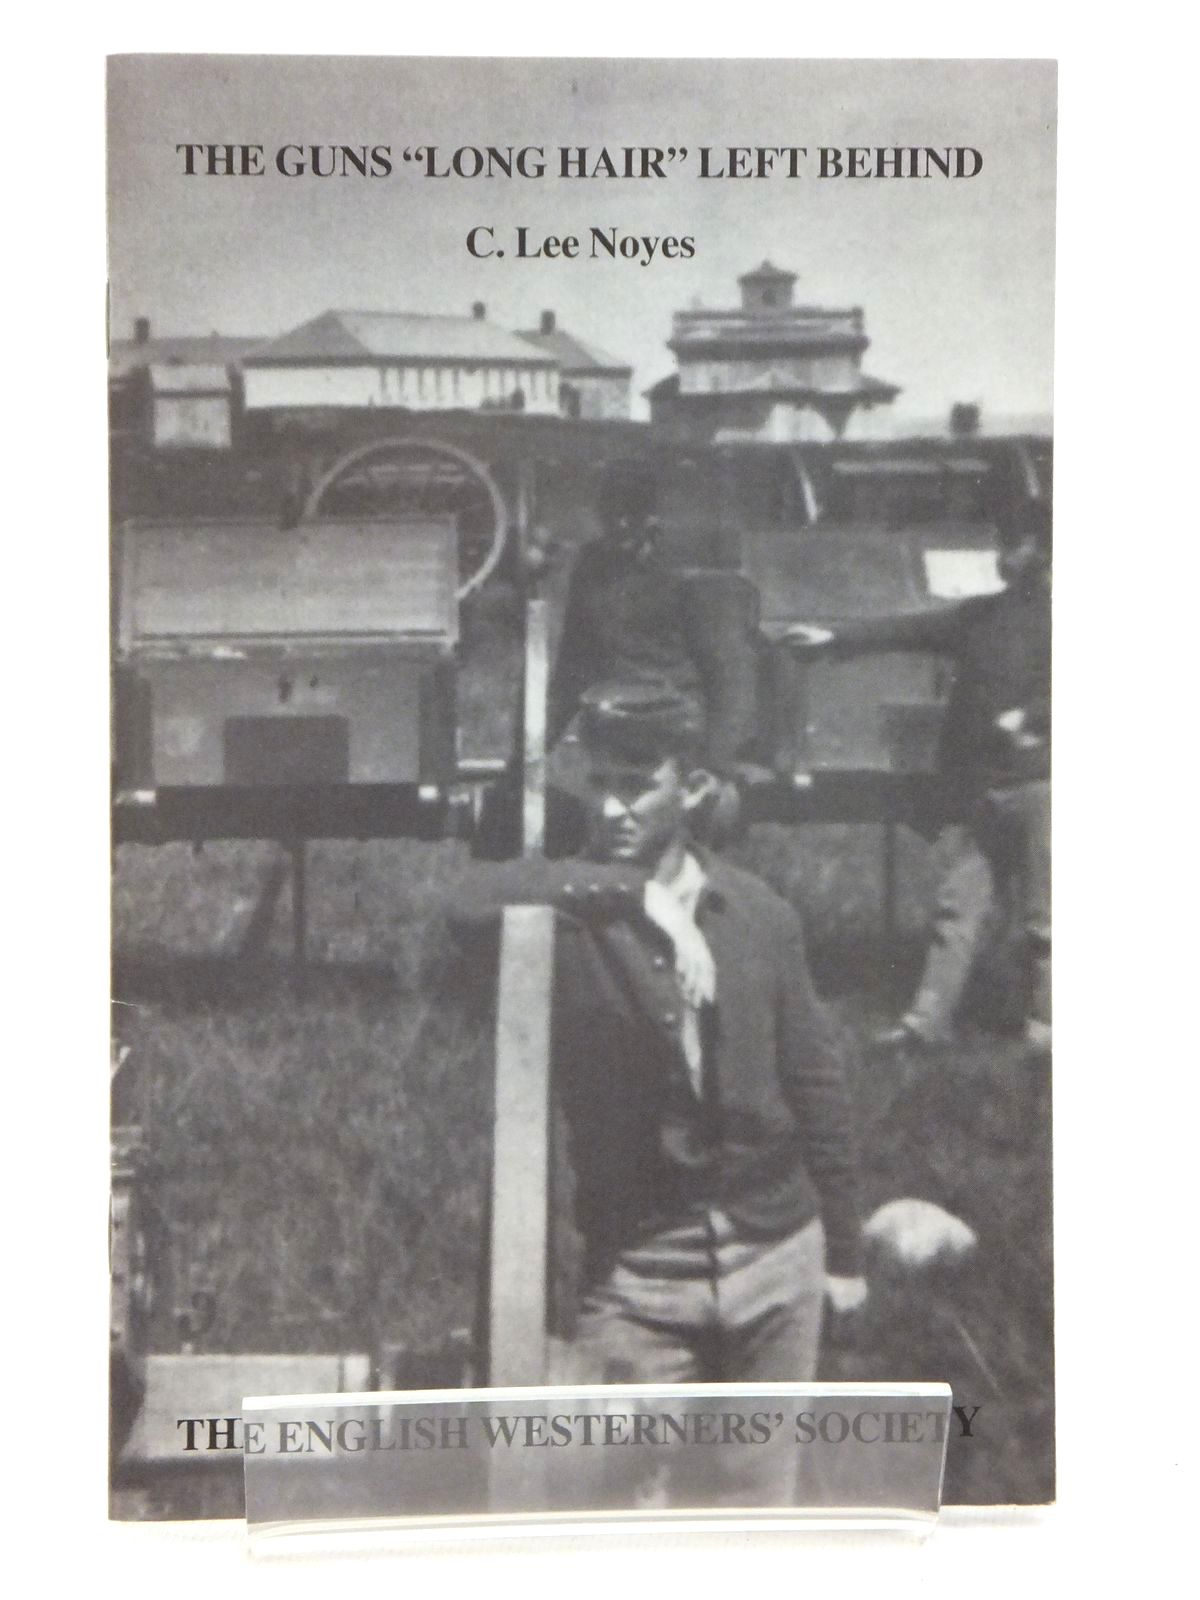 """Photo of THE GUNS """"LONG HAIR"""" LEFT BEHIND: THE GATLING GUN DETACHMENT AND THE LITTLE BIG HORN written by Noyes, C. Lee published by The English Westerners' Society (STOCK CODE: 1815256)  for sale by Stella & Rose's Books"""